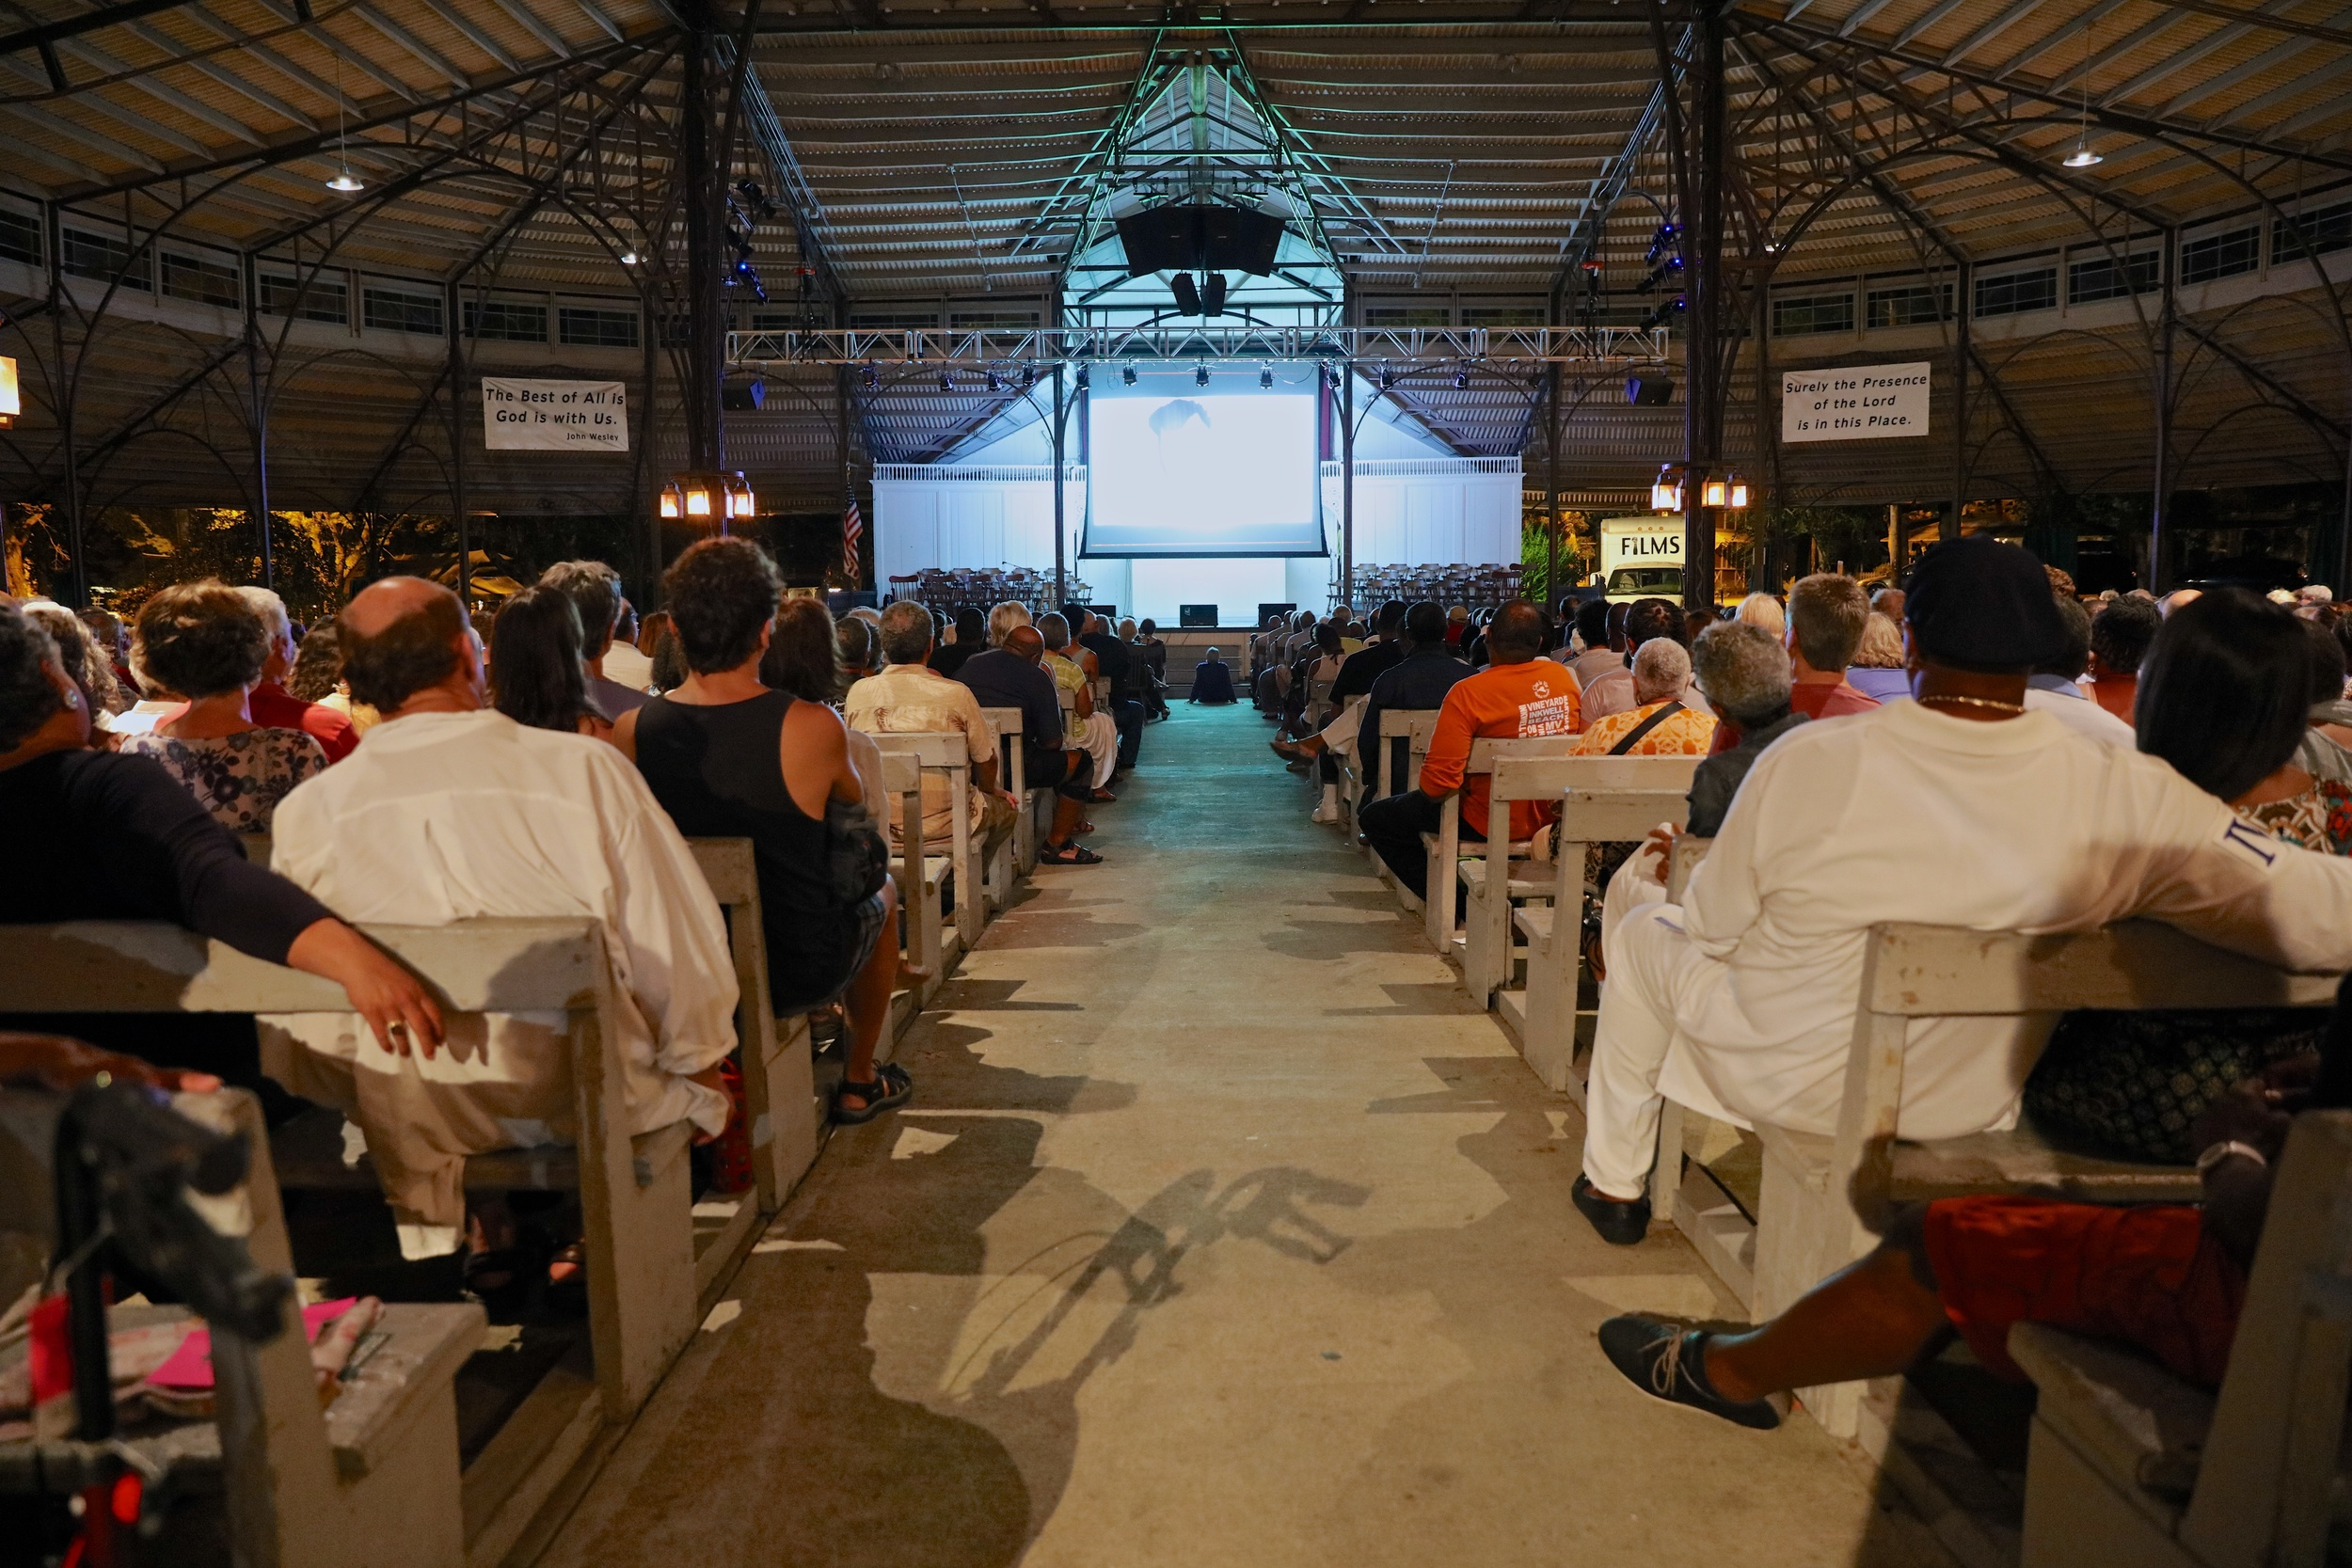 The screening of THE BLACK PANTHERS: VANGUARD OF THE REVOLUTION, with director Stanley Nelson, former Black Panther Kathleen Cleaver, and Professor Henry Louis Gates, Jr., on August 3, 2015,at the Tabernacle in Oak Bluffs. Photo by Reece Robinson.